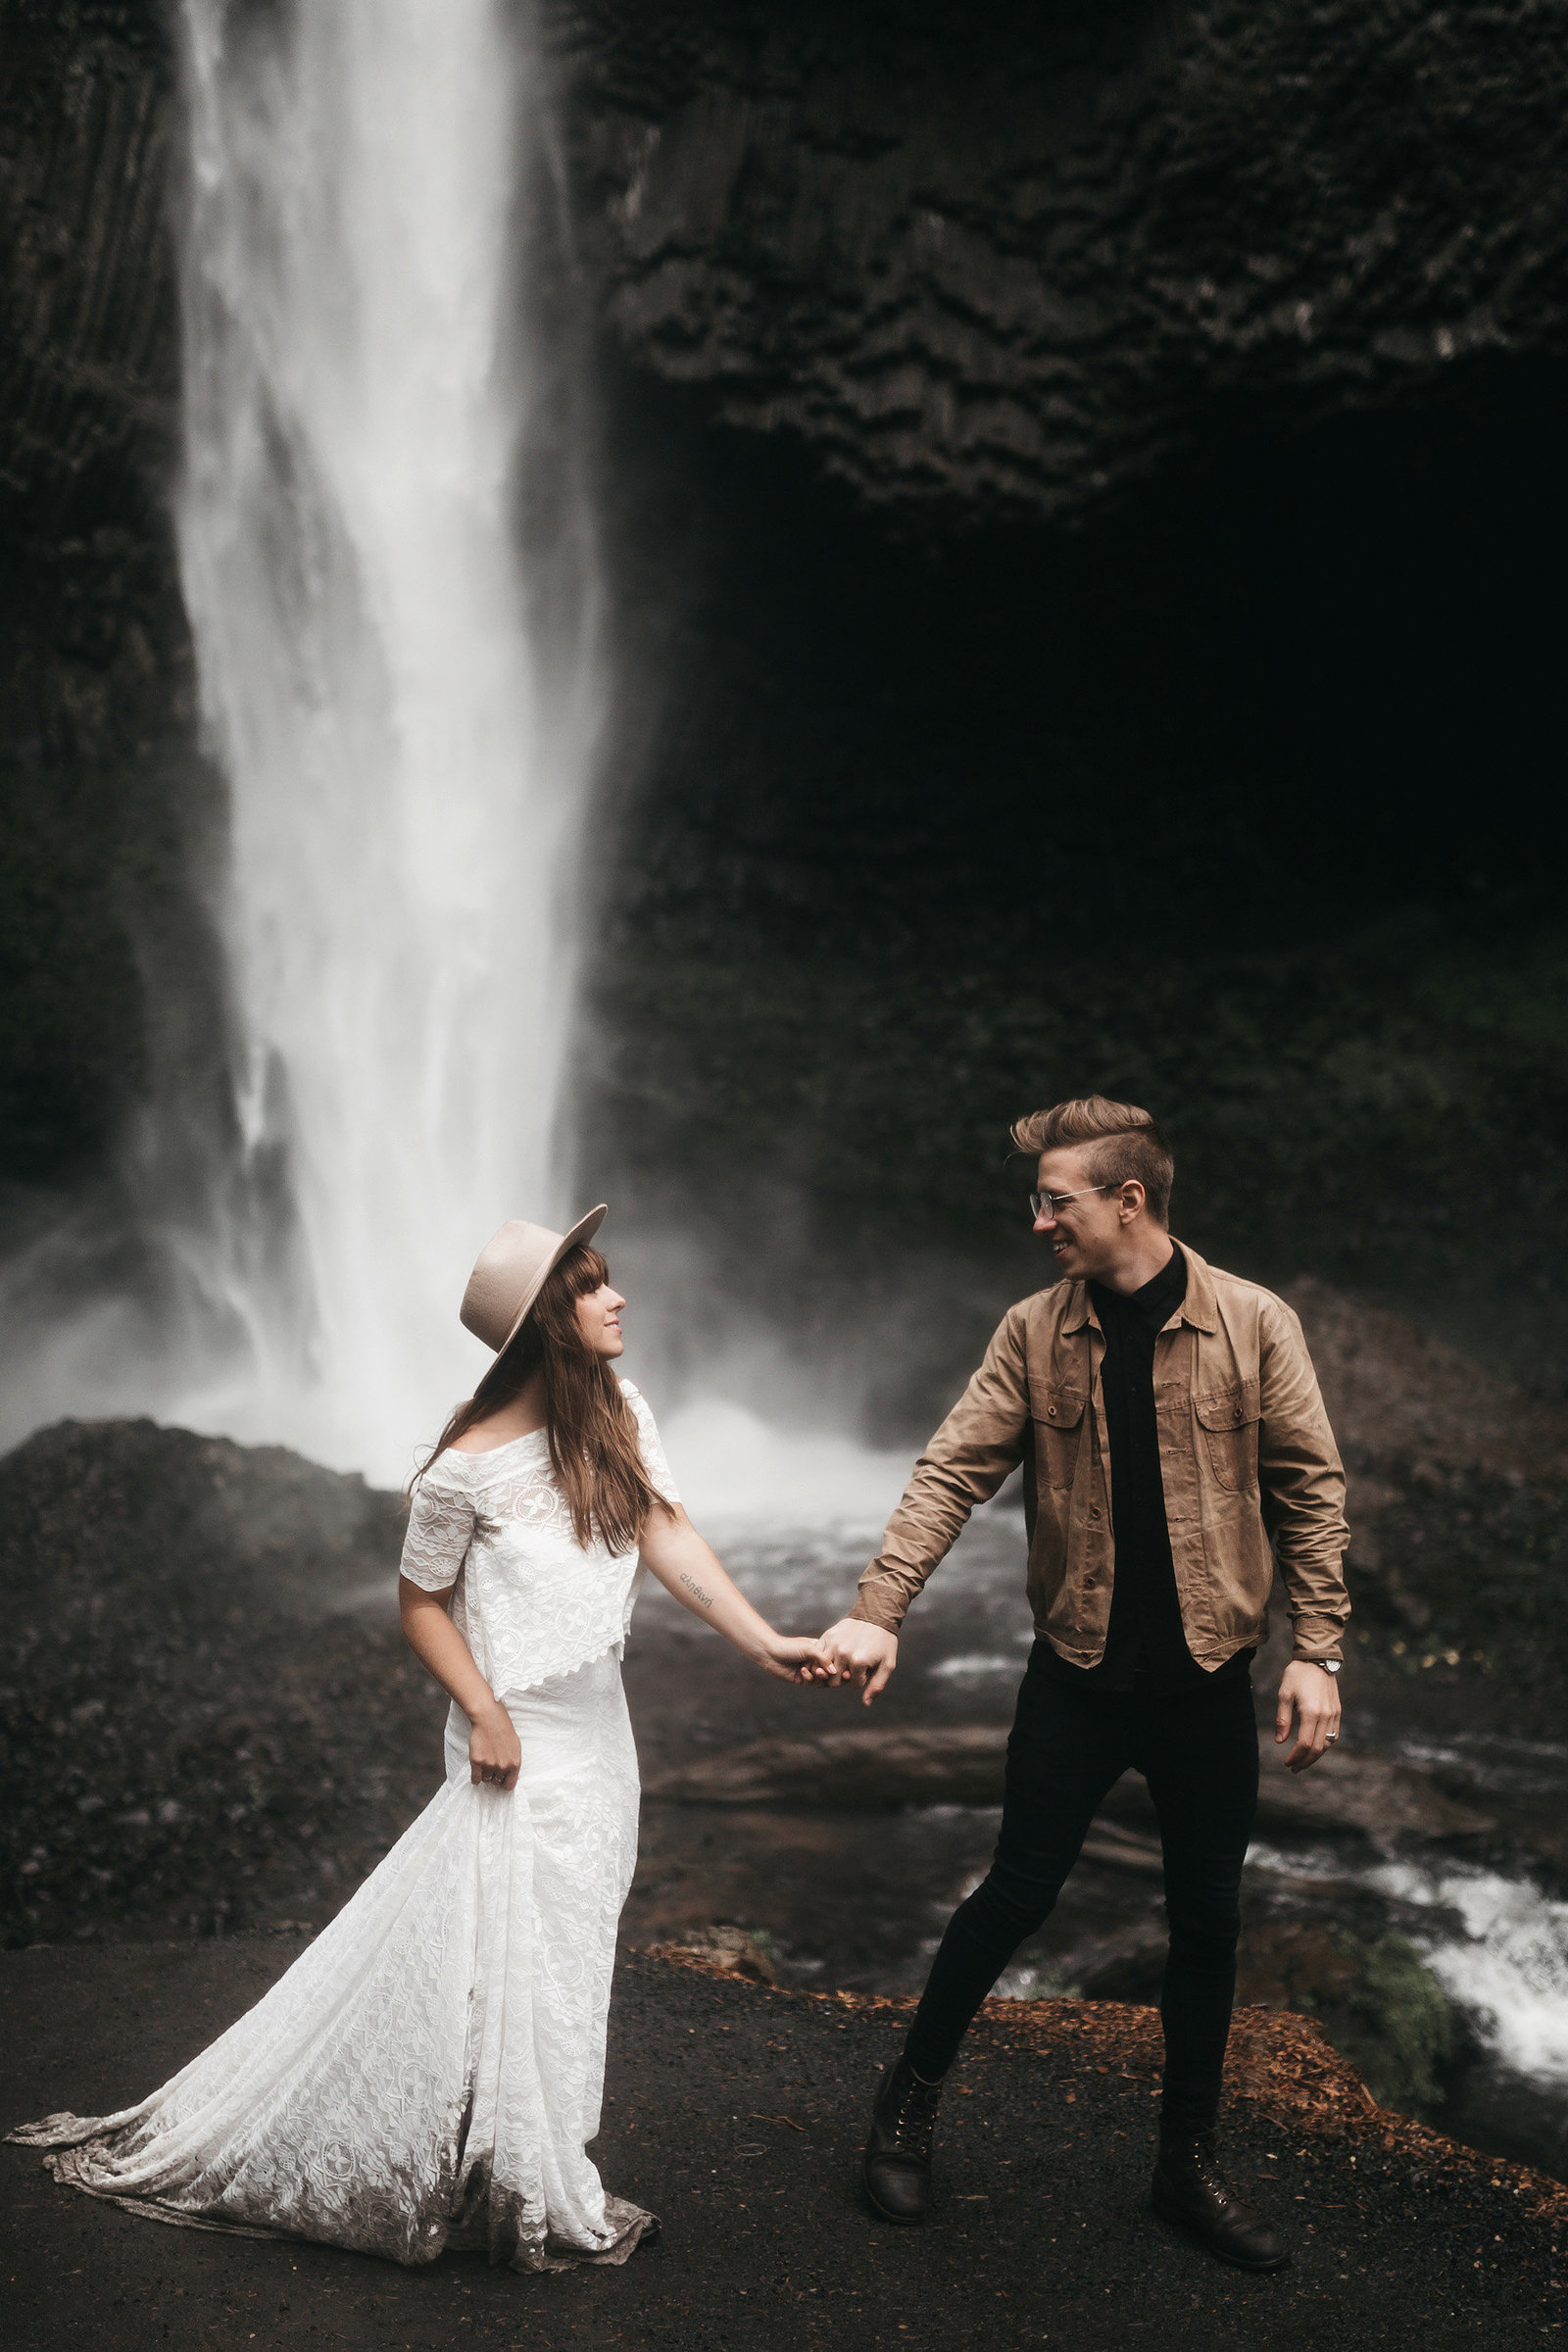 white-magazine-athena-camron-seattle-oregon-wedding-photography-woodlands-house-boho-elopement-inspiration-65